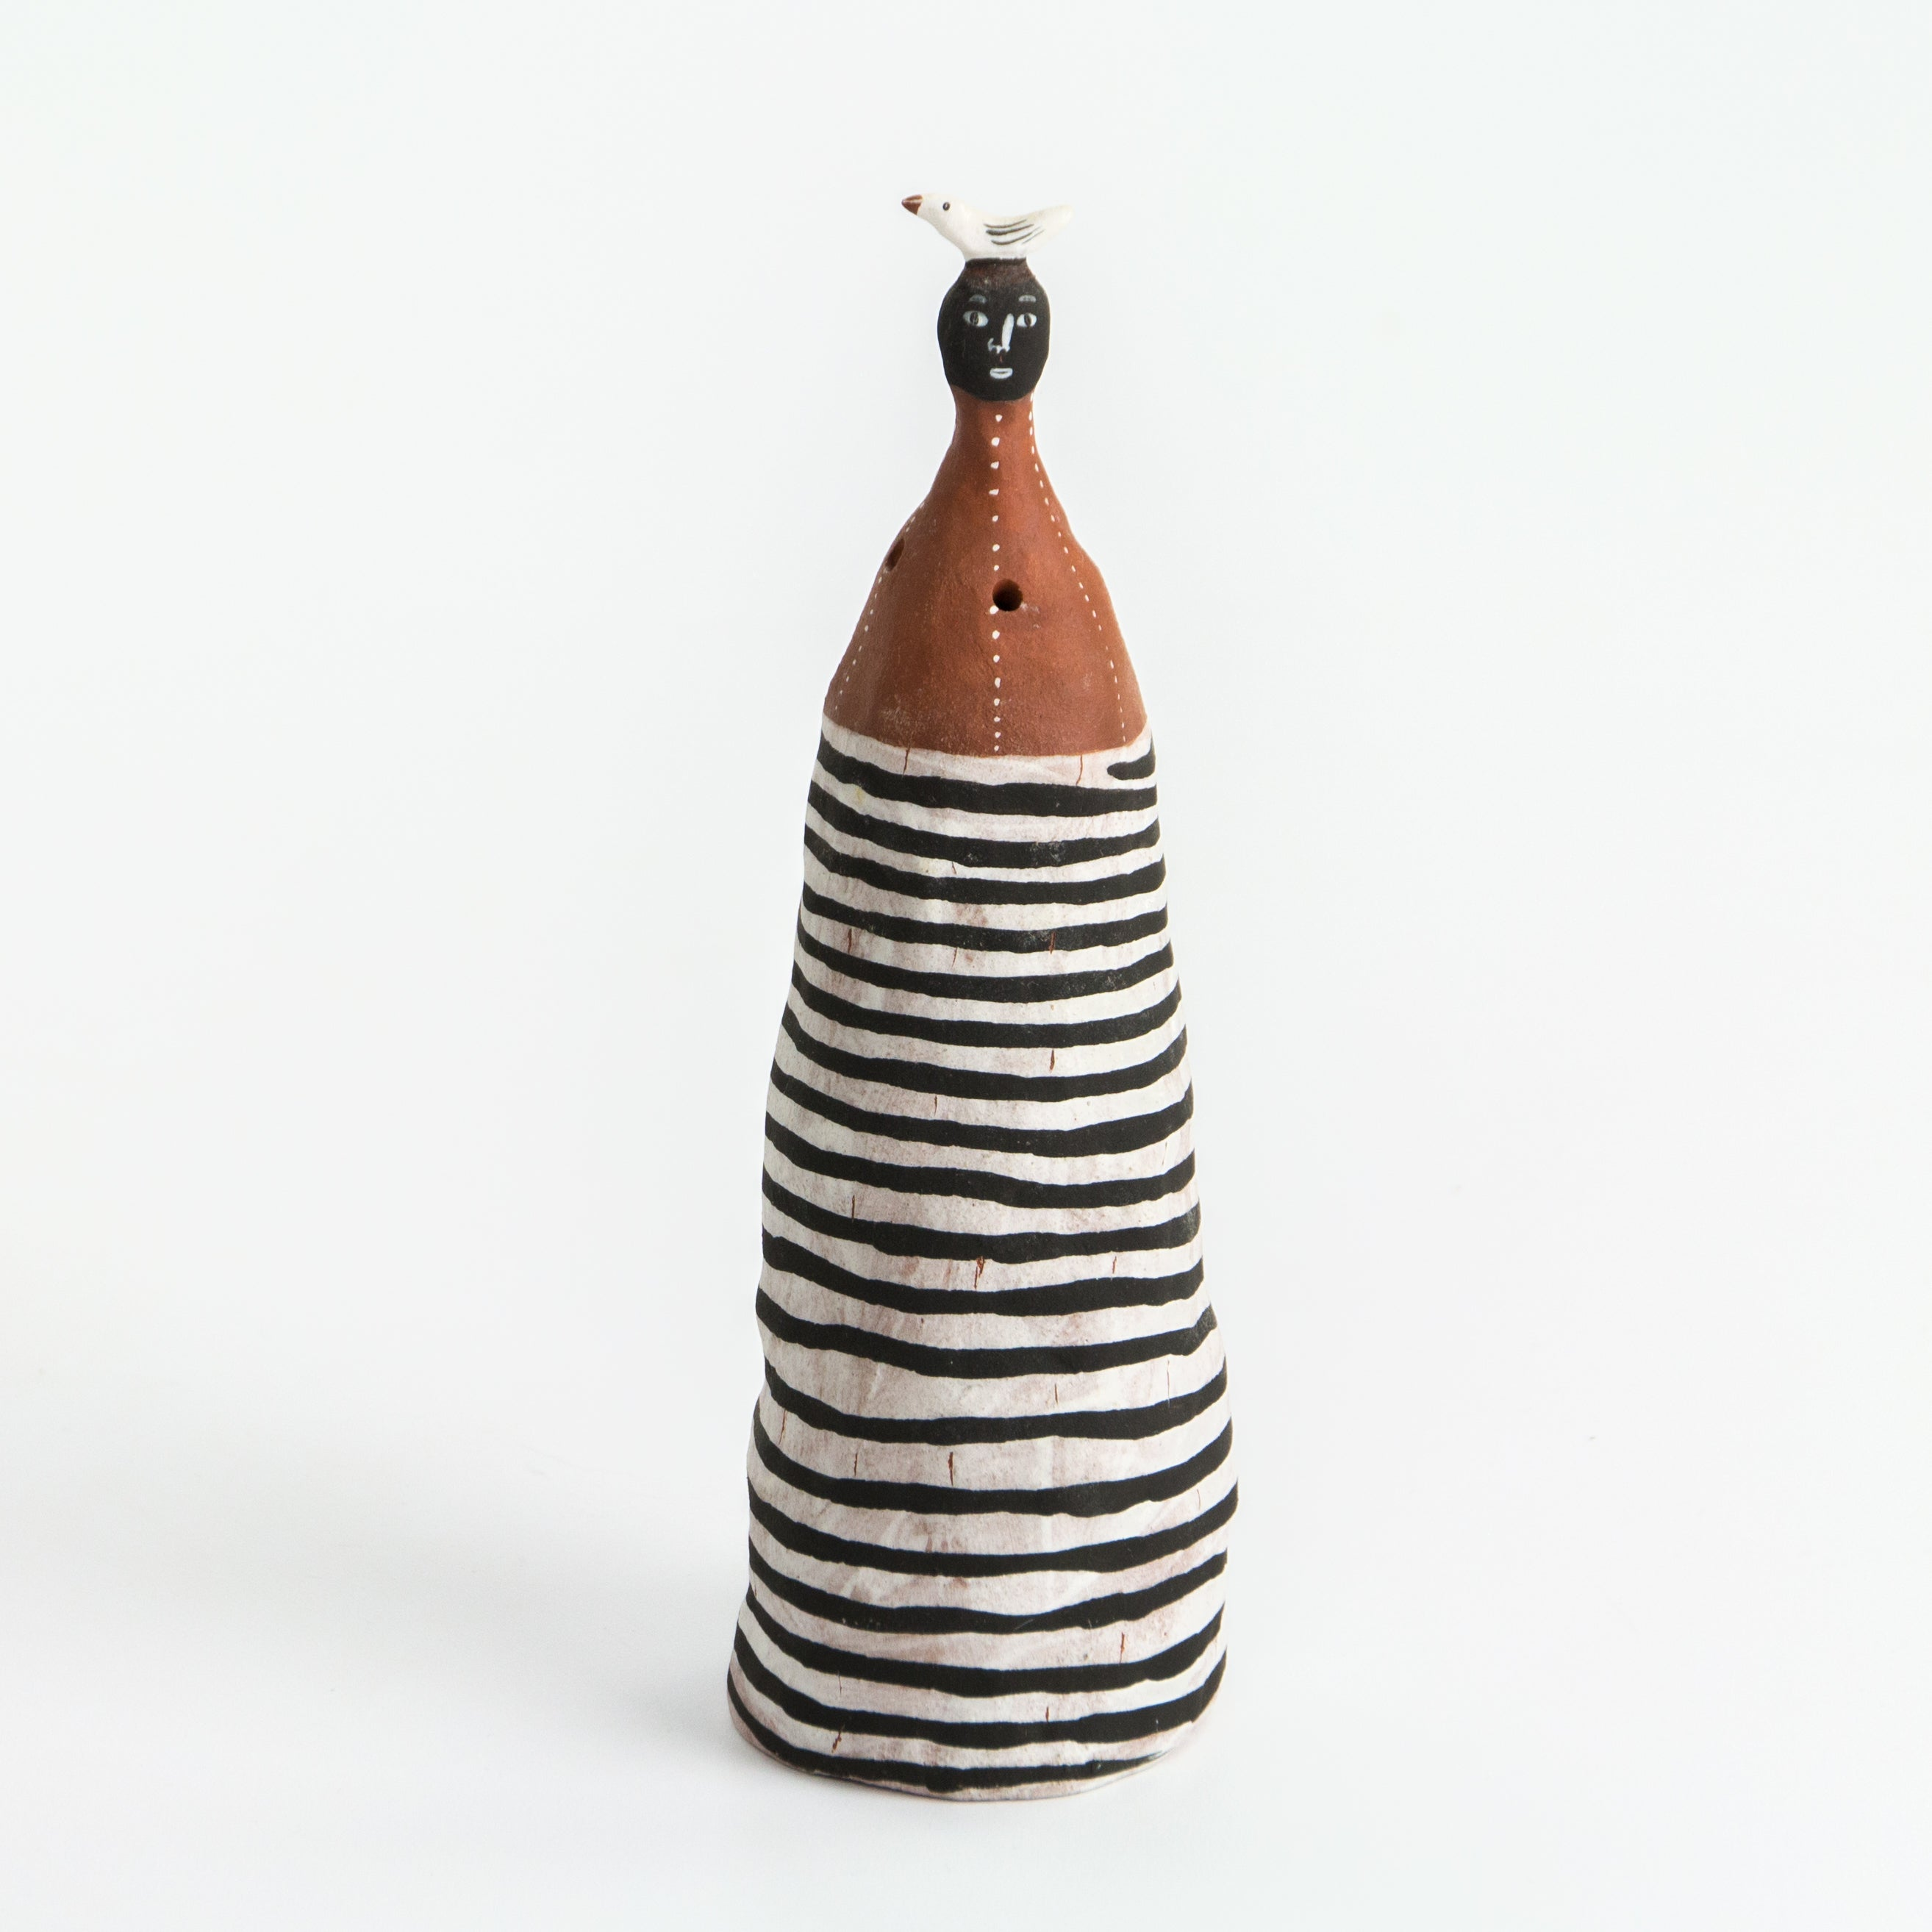 Figurative Pepper Shaker